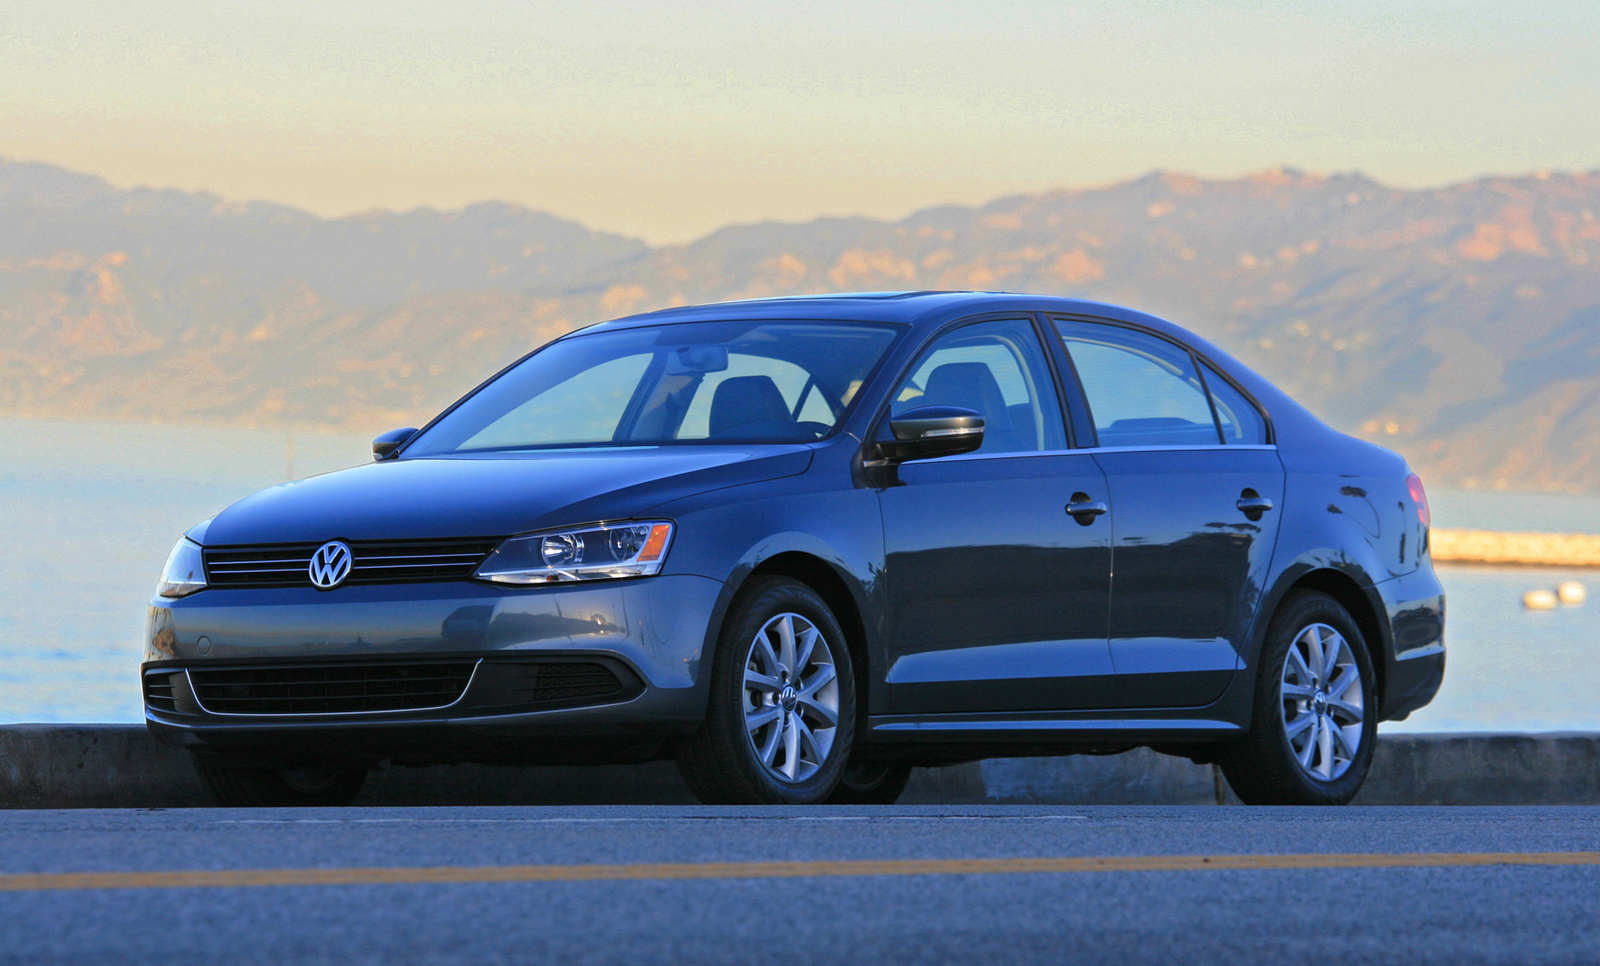 2014 volkswagen jetta pictures cargurus. Black Bedroom Furniture Sets. Home Design Ideas